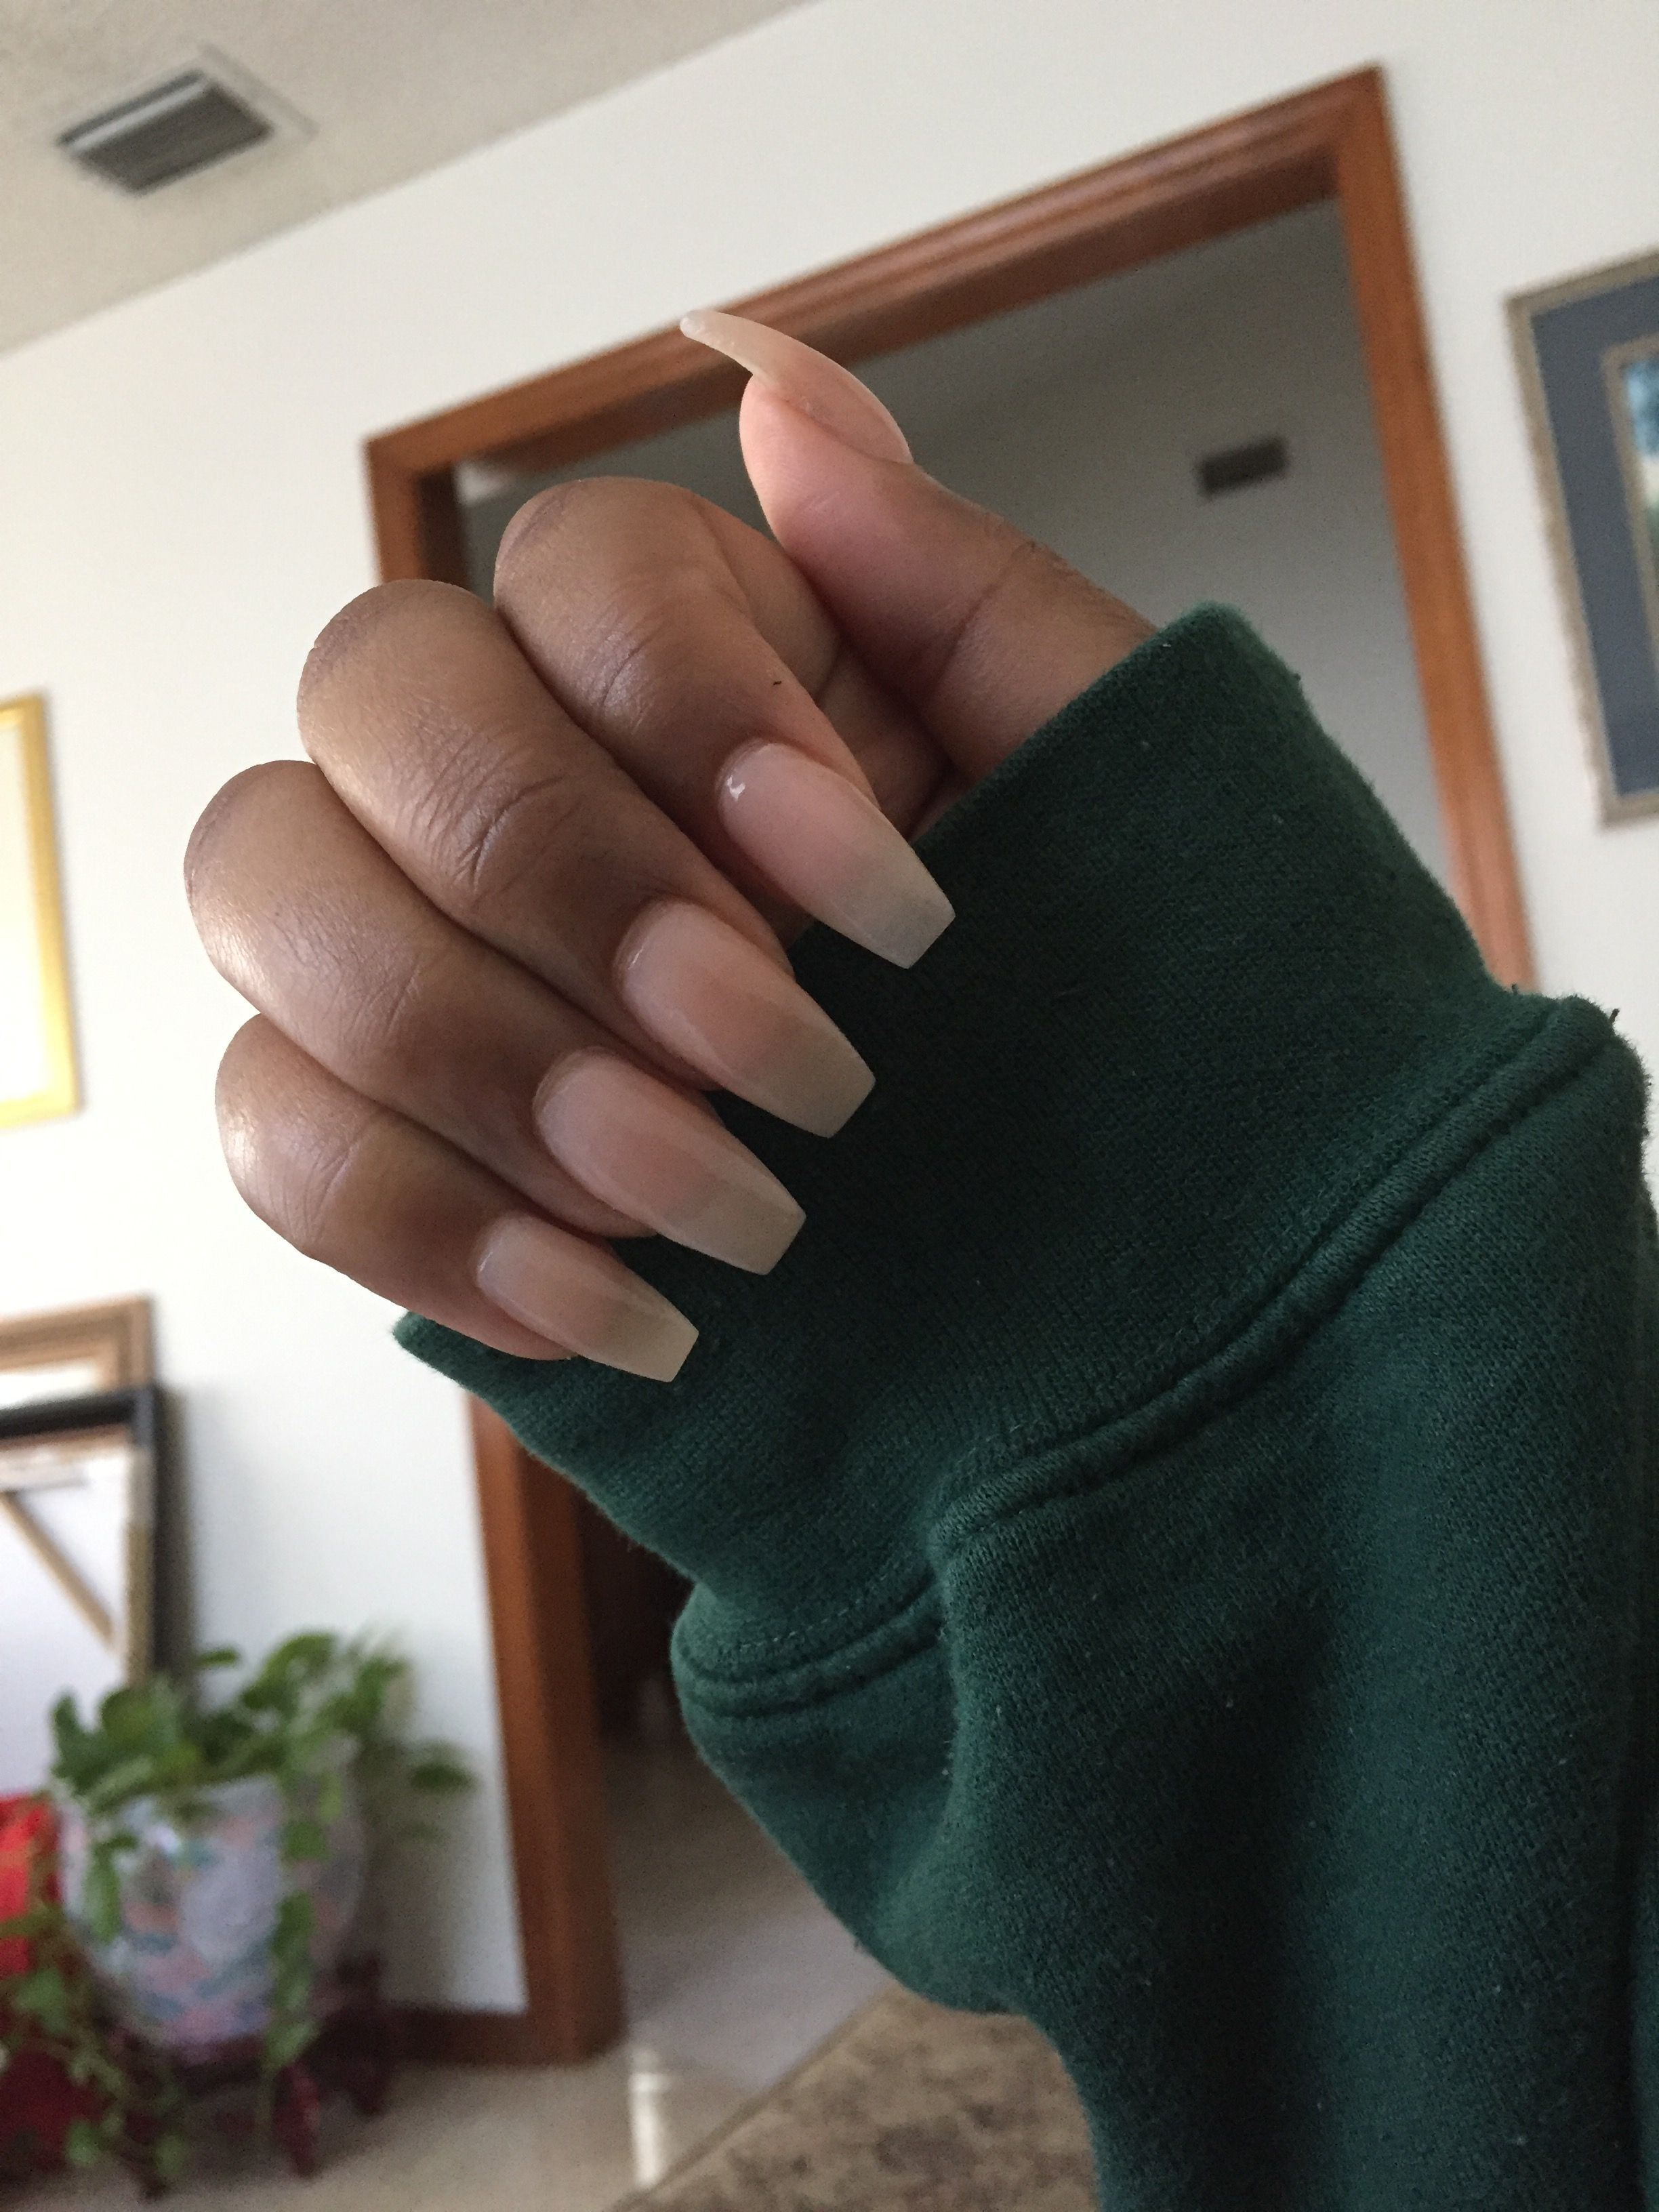 Pin By Kimberly King On Nails Clear Acrylic Nails Natural Acrylic Nails Acrylic Nails Coffin Short